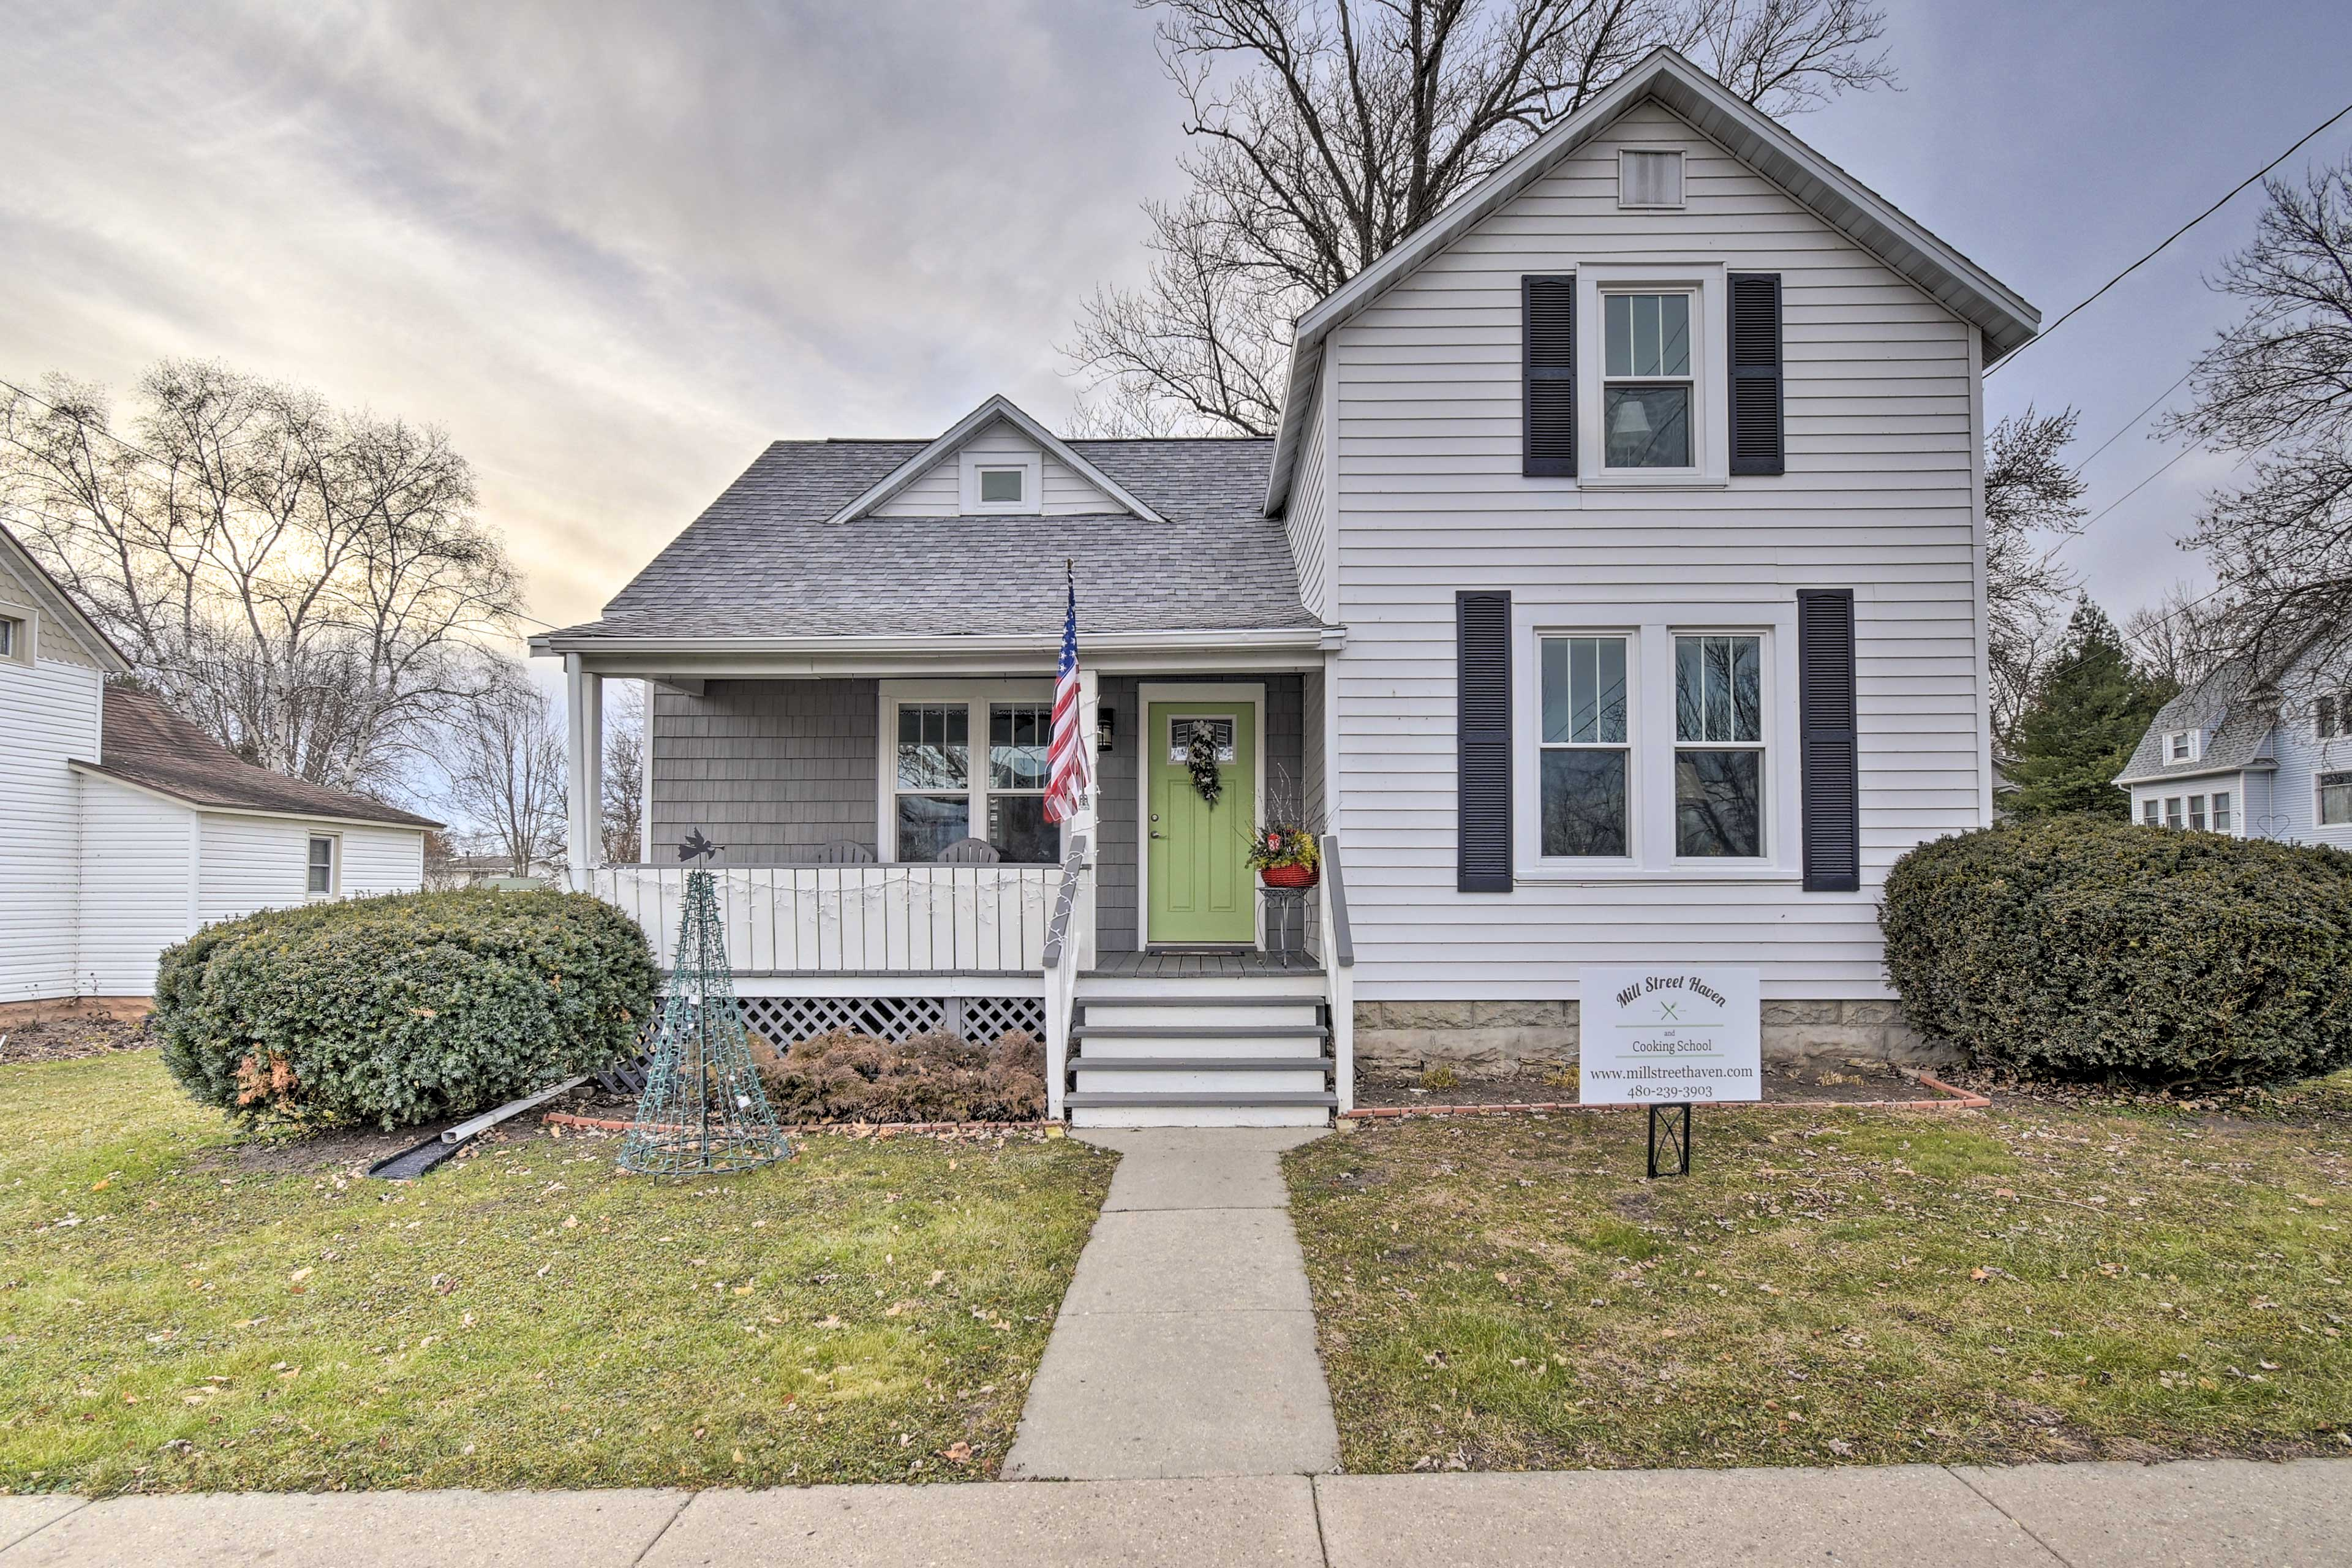 Located 2 blocks from the lake, this home for 8 can't be beat!